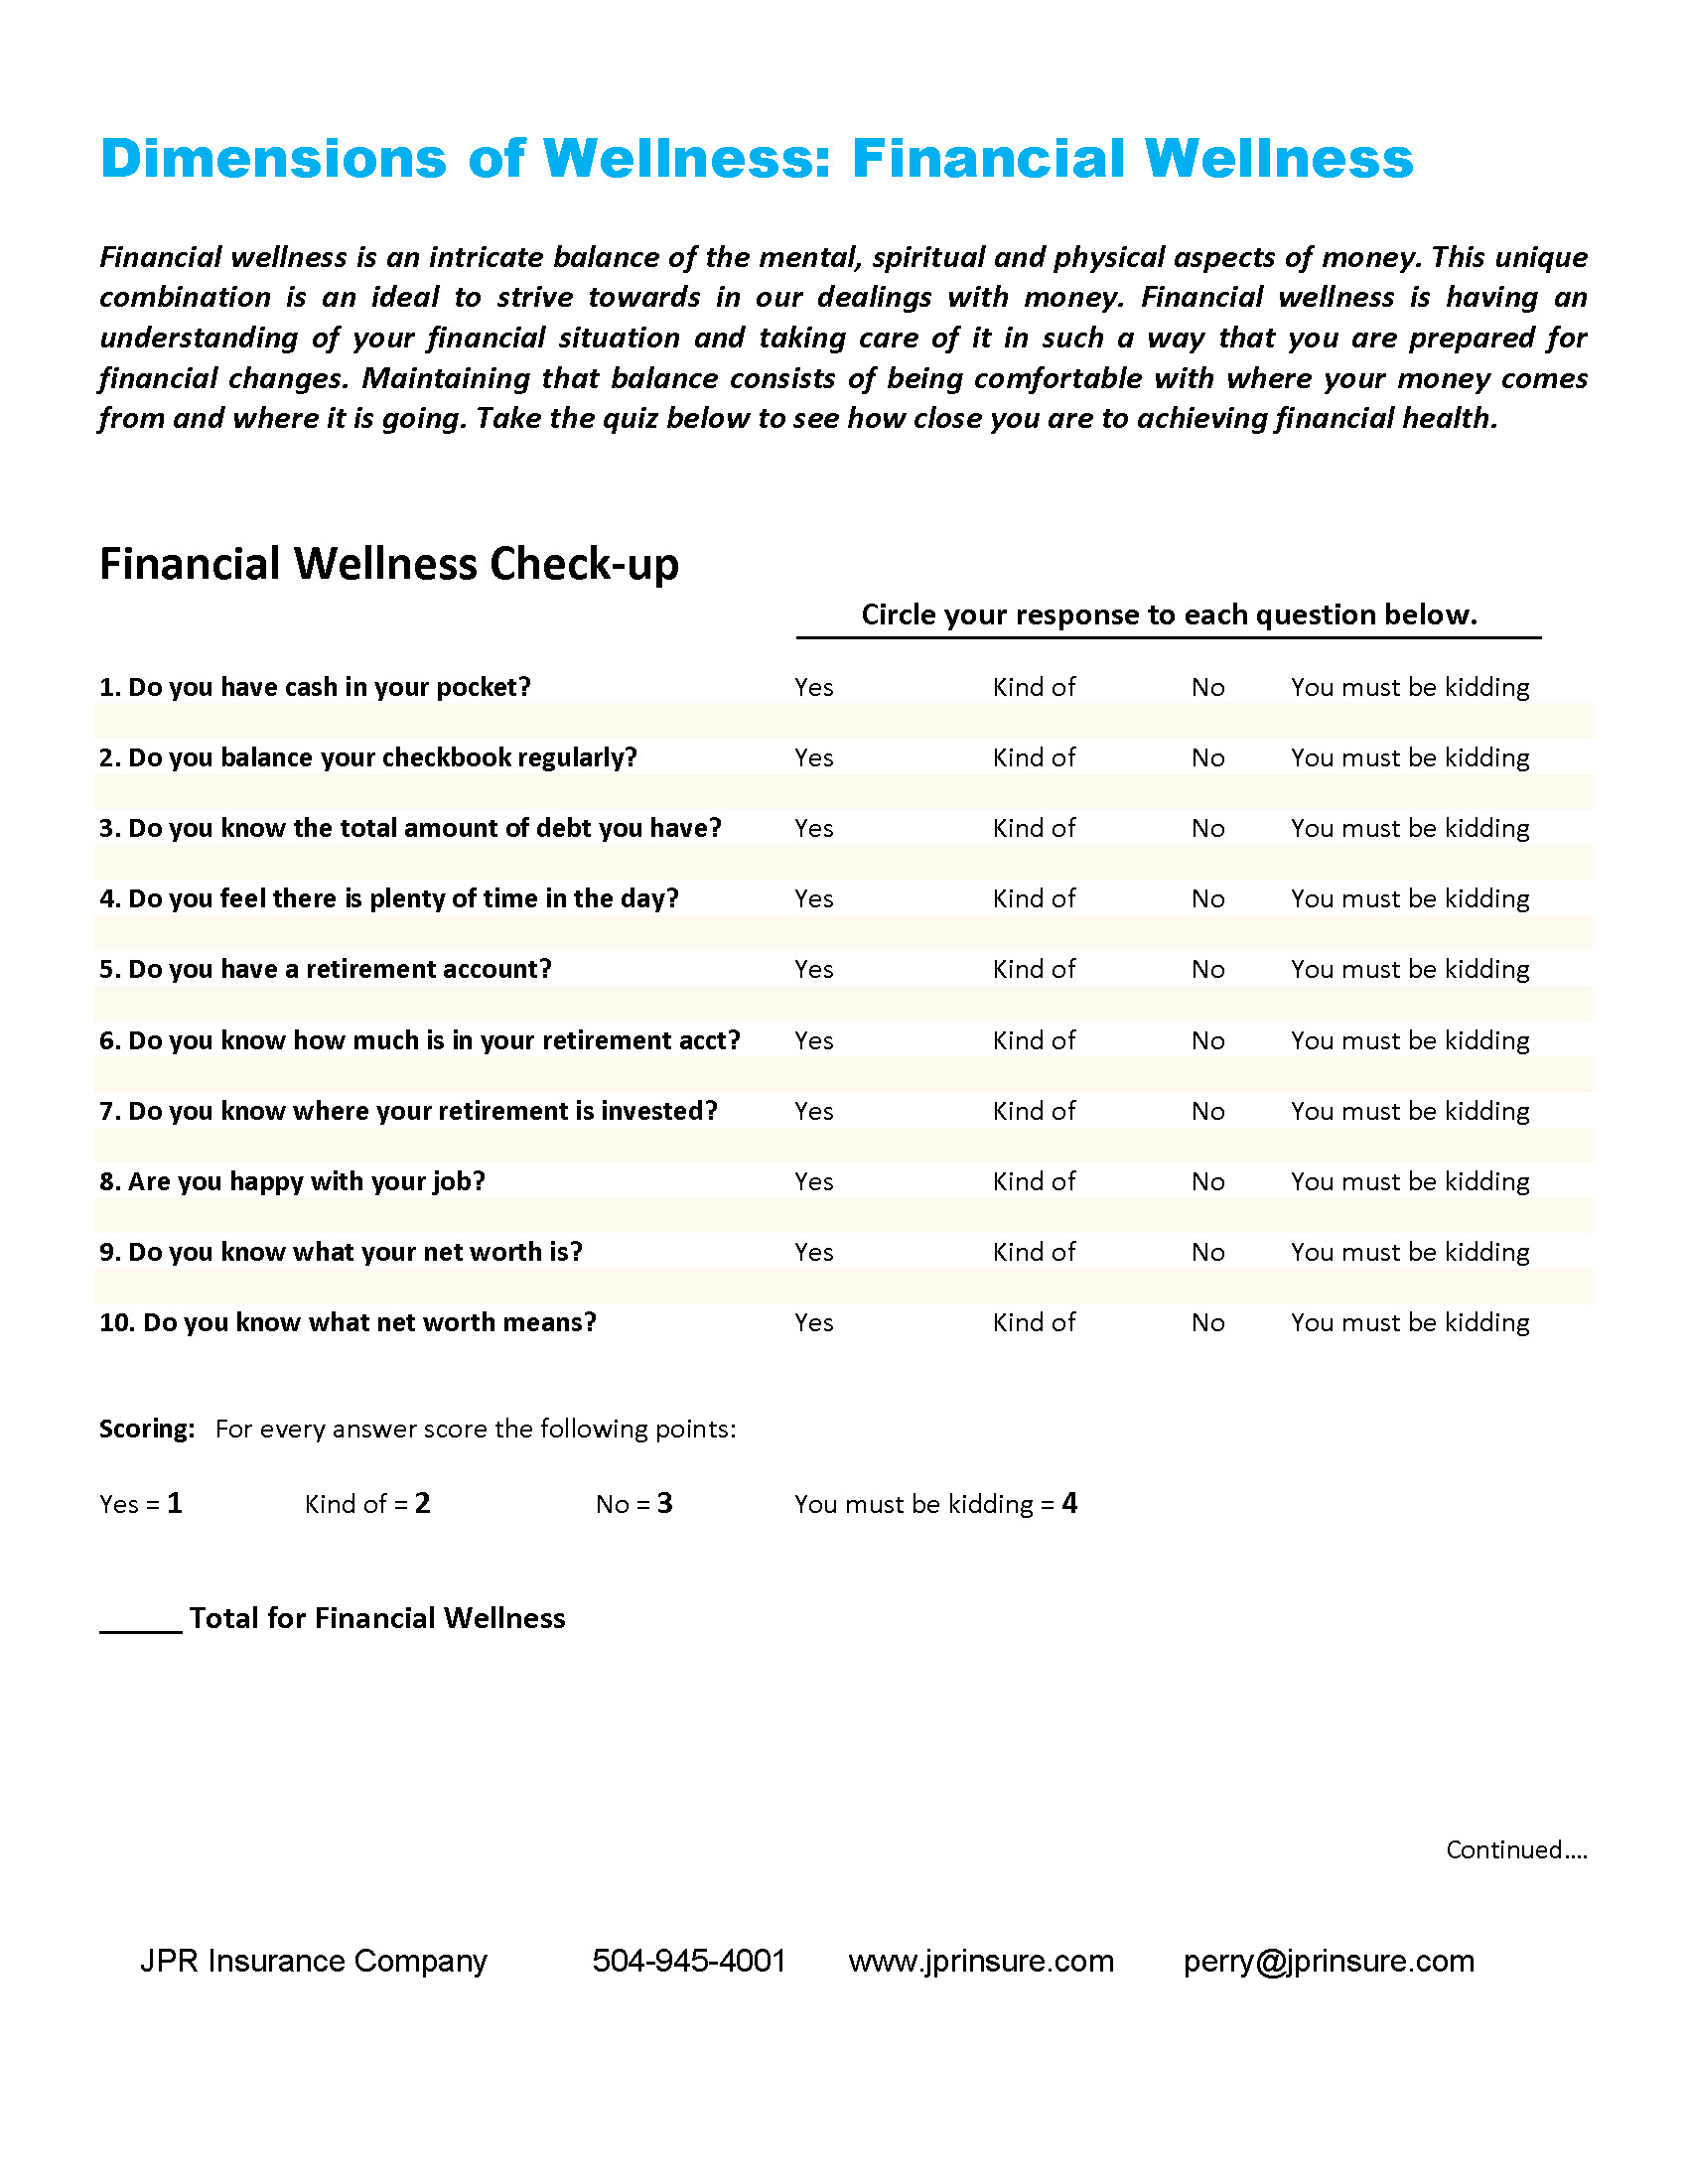 wellness-test-financial 11.6.18_Page_1